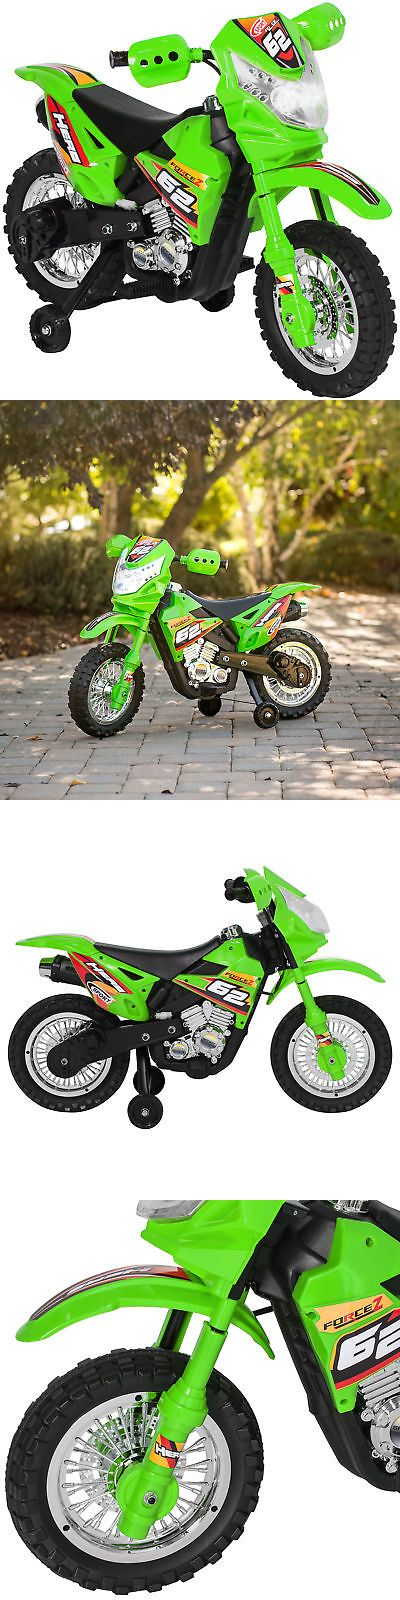 Bcp 6v Kids Electric Ride On Motorcycle Toy W Training Wheels Lights Music Ride On Toys Kids Ride On Track Toy